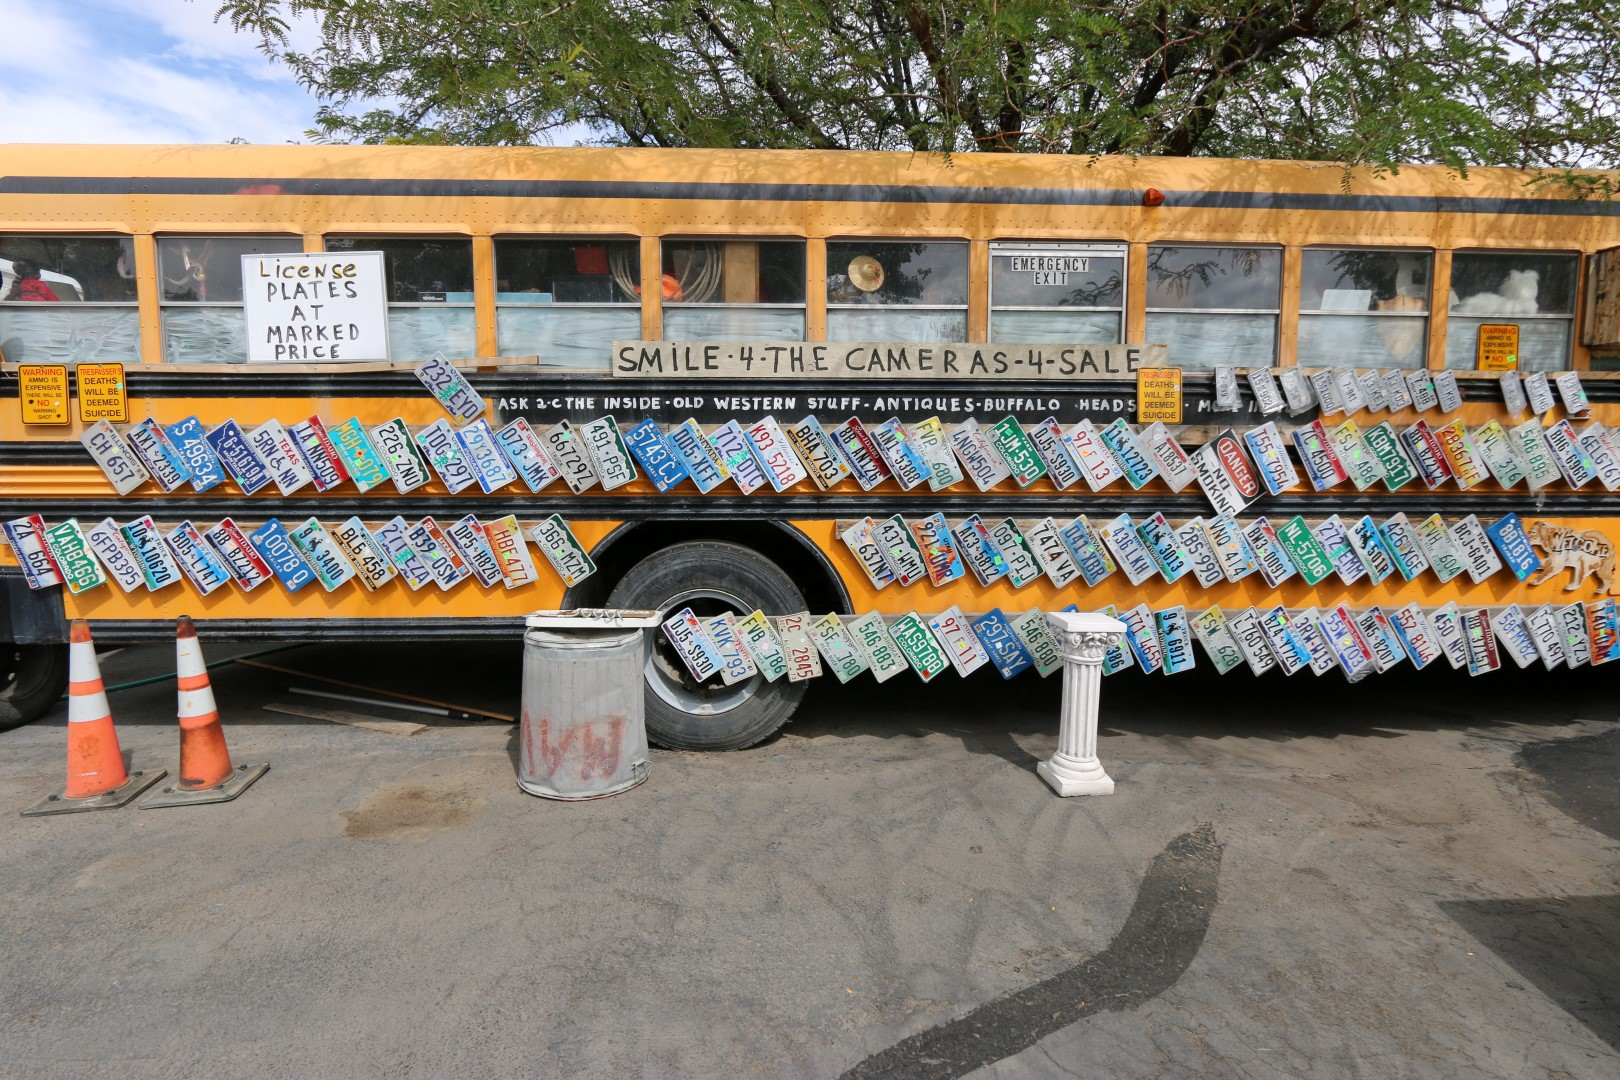 License plate bus